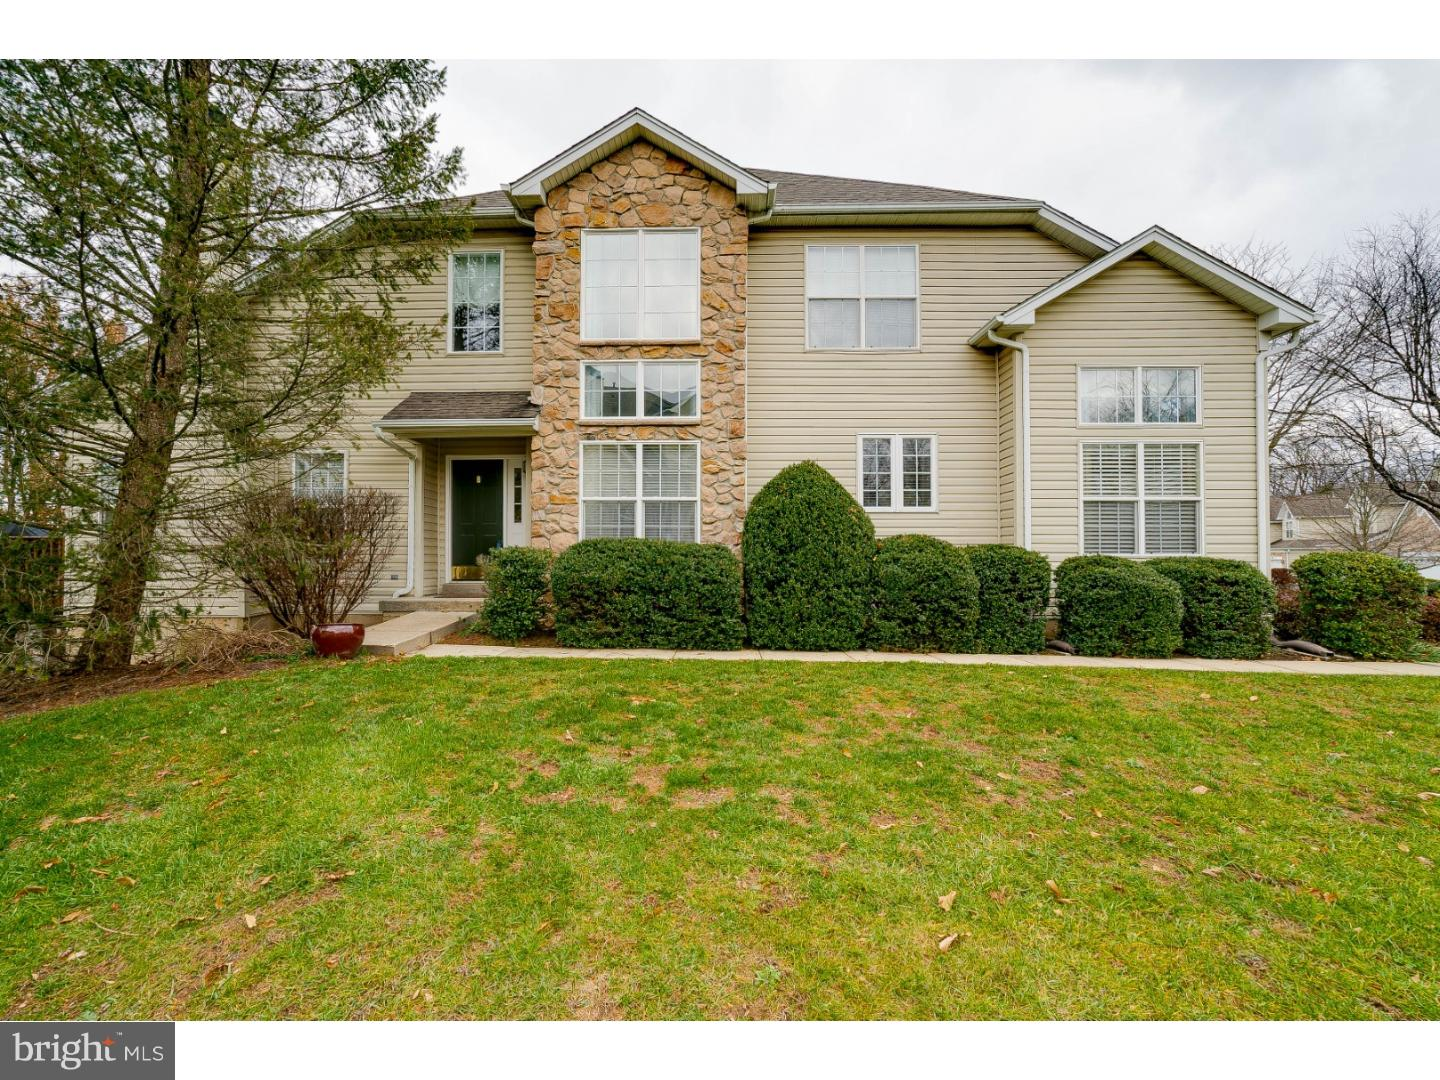 255 Torrey Pine Court West Chester, PA 19380